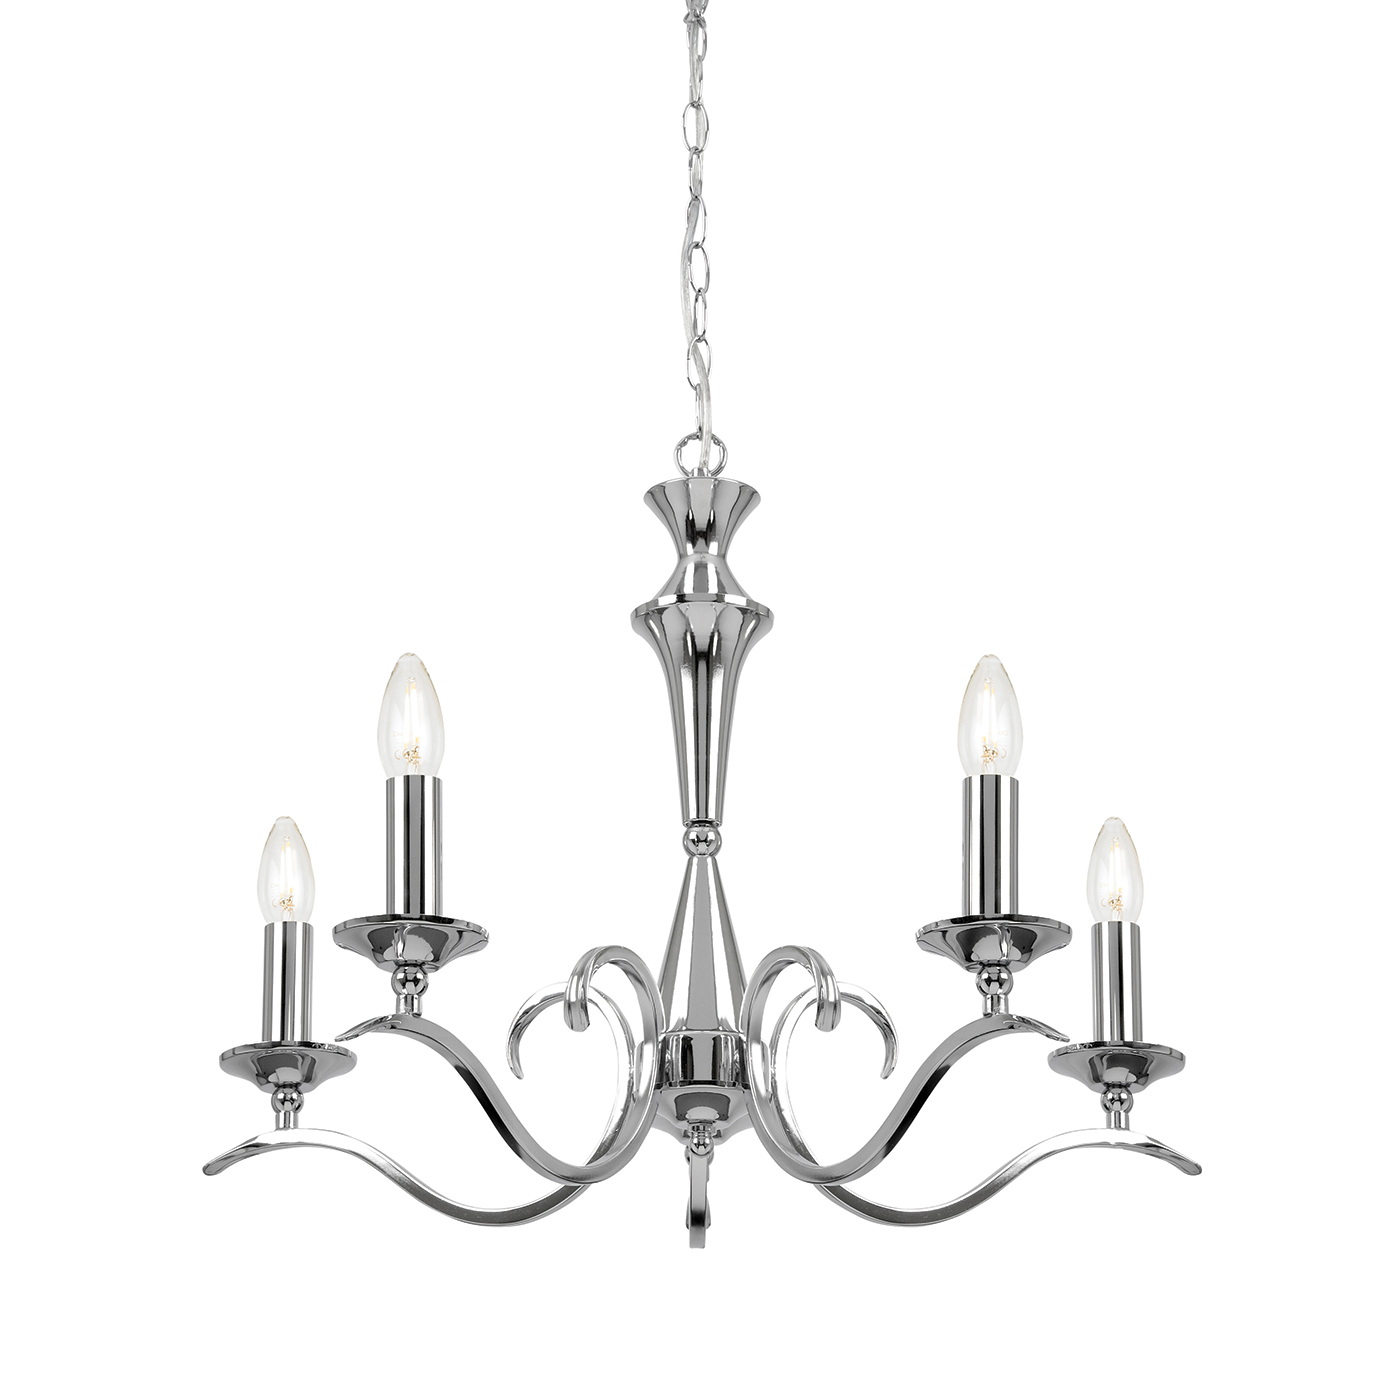 Endon Kora pendant 5x 40W Chrome effect plate